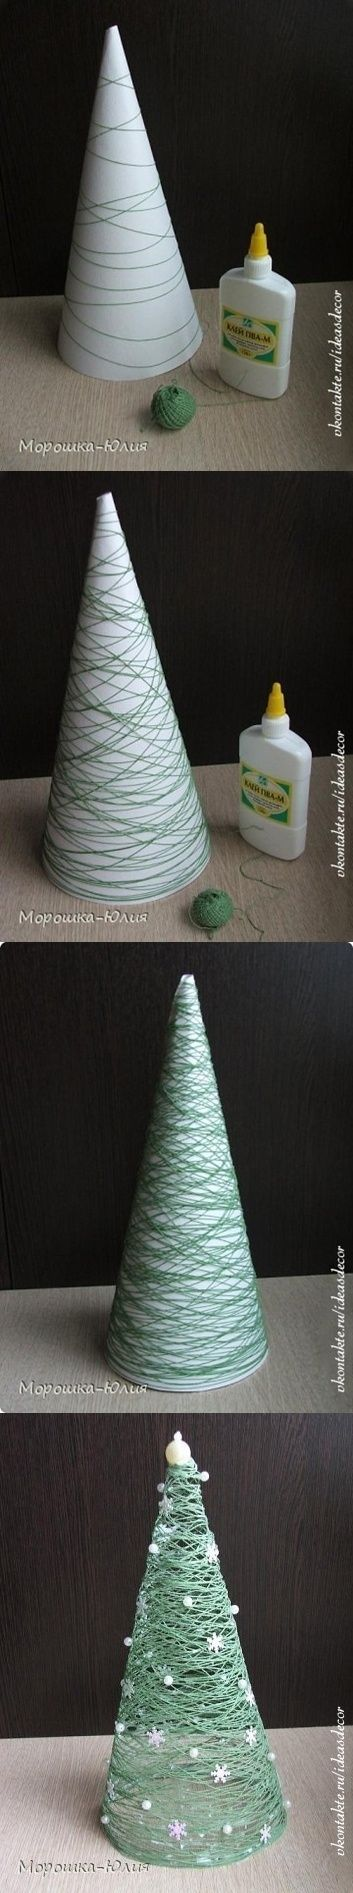 Quick and fun Christmas decorations